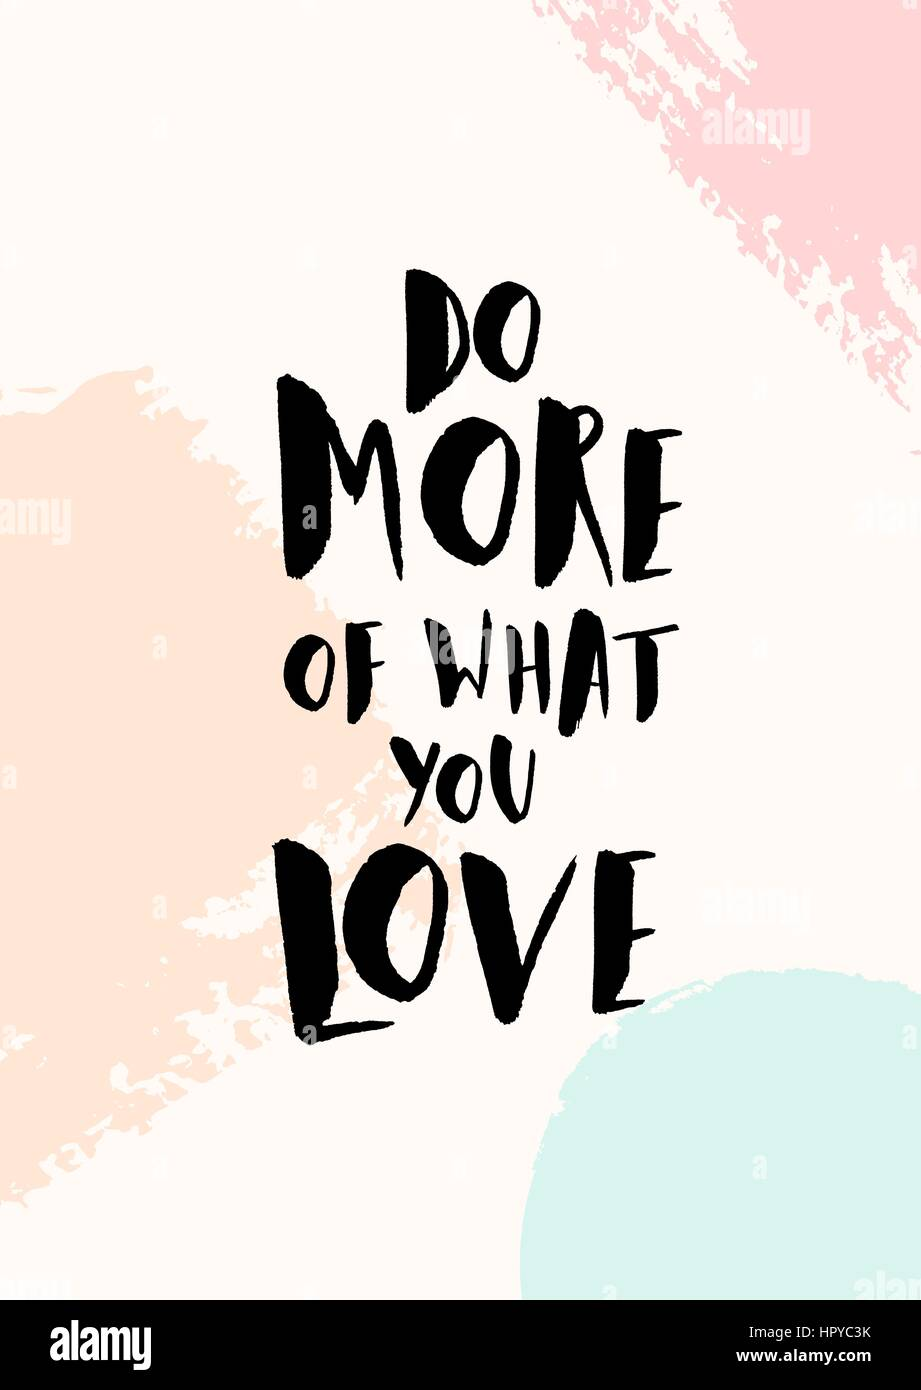 Do More Of What You Love Inspirational Quote Poster Design Hand